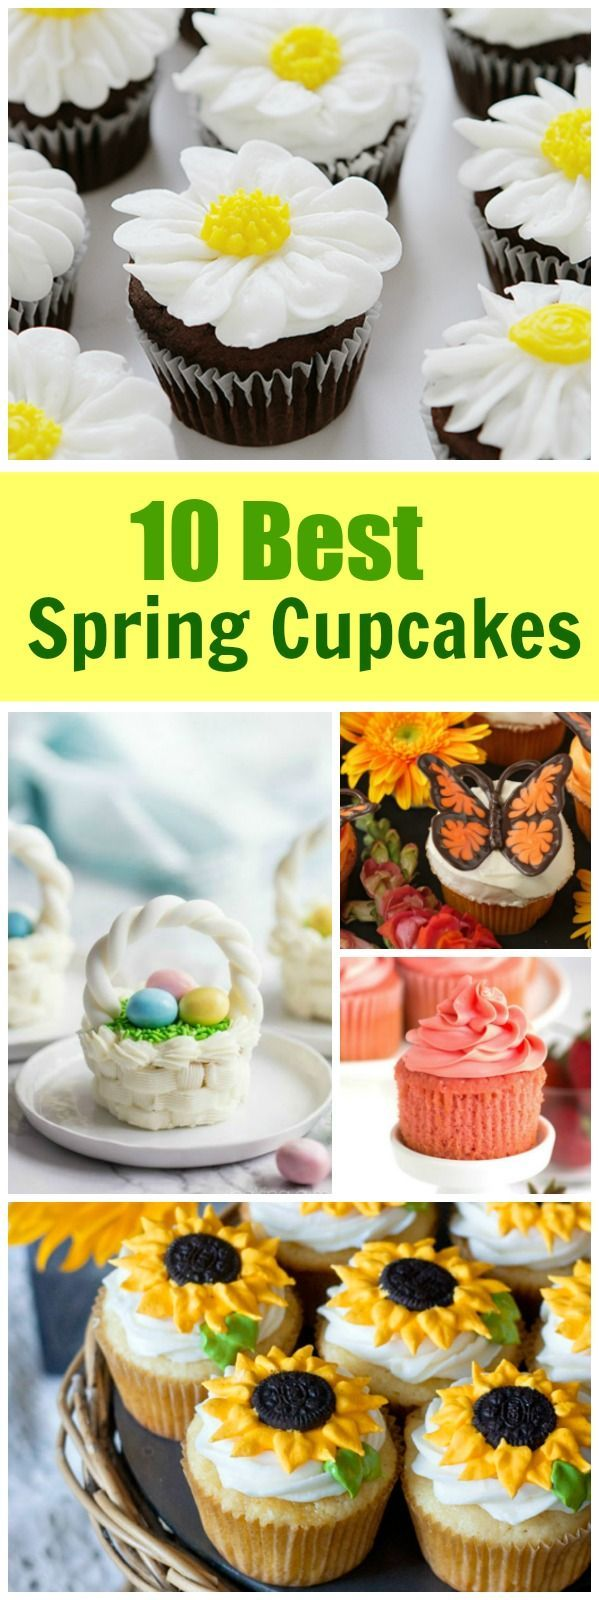 10 Best Spring Cupcake Recipes: Daisy Cupcakes, Lemon Sunflower Cupcakes, Chocolate Butterfly Cupcakes, Easter Basket Cupcakes and more!